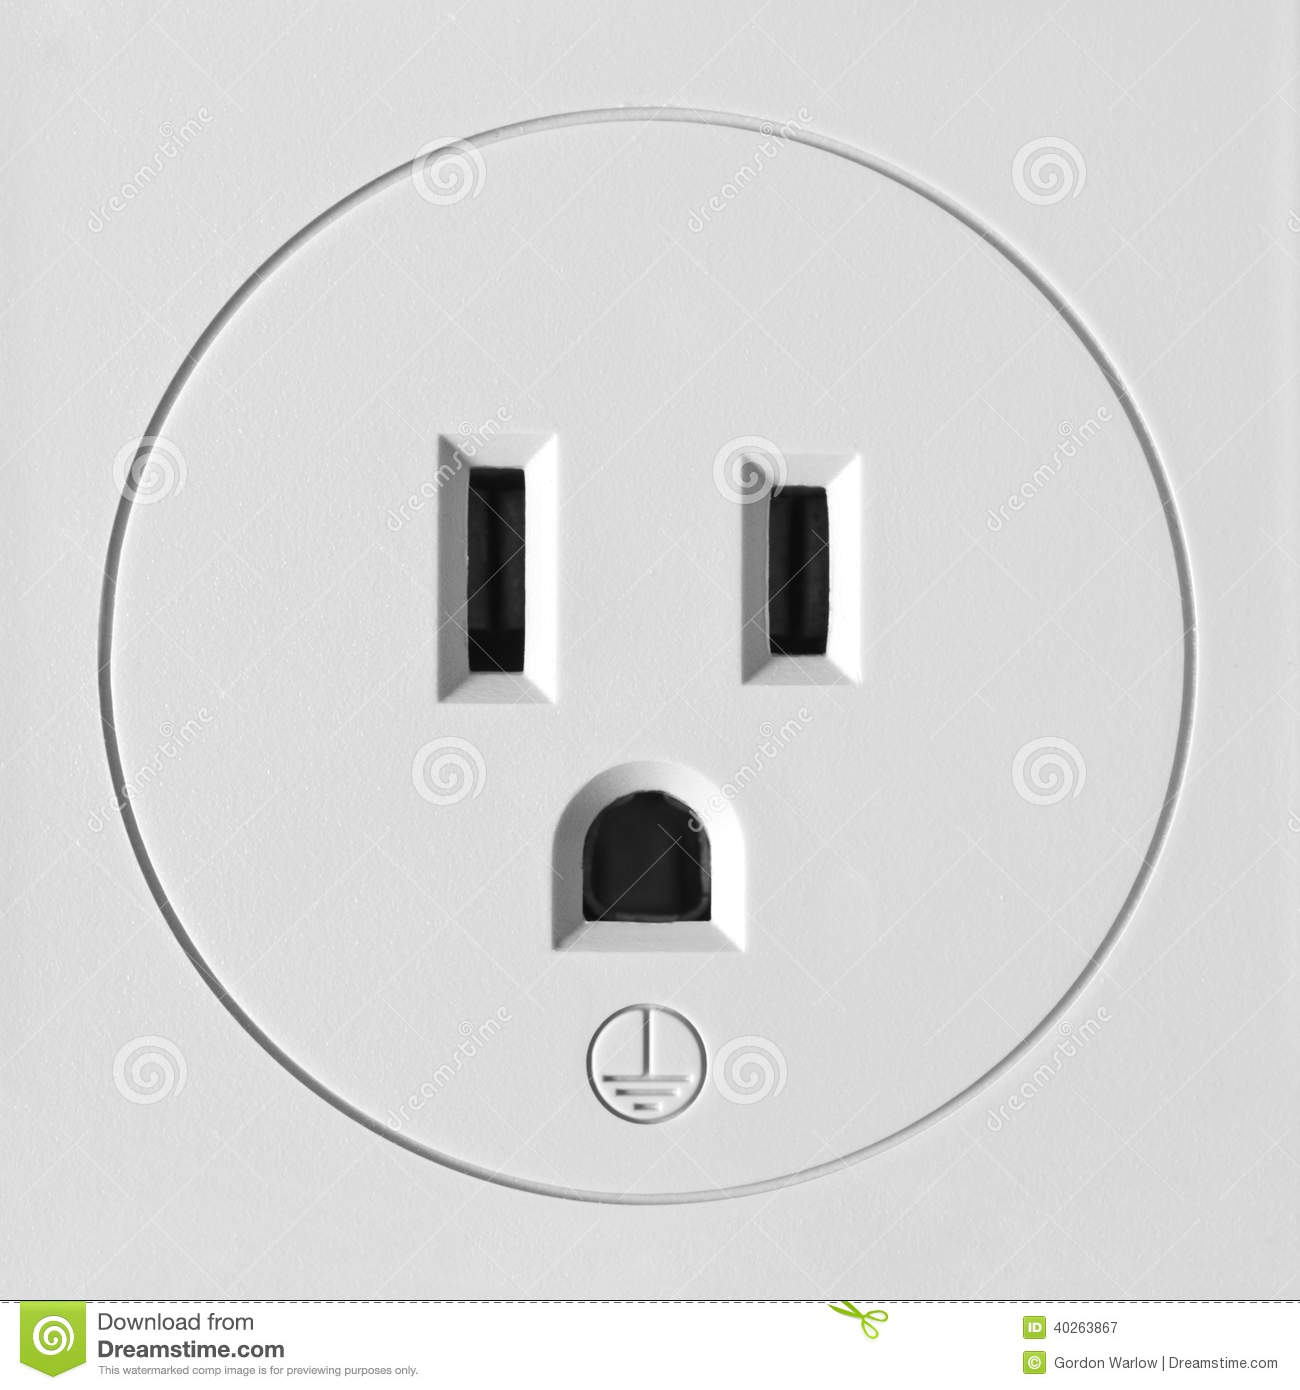 Electrical outlet north america stock image image of power electrical outlet north america biocorpaavc Choice Image